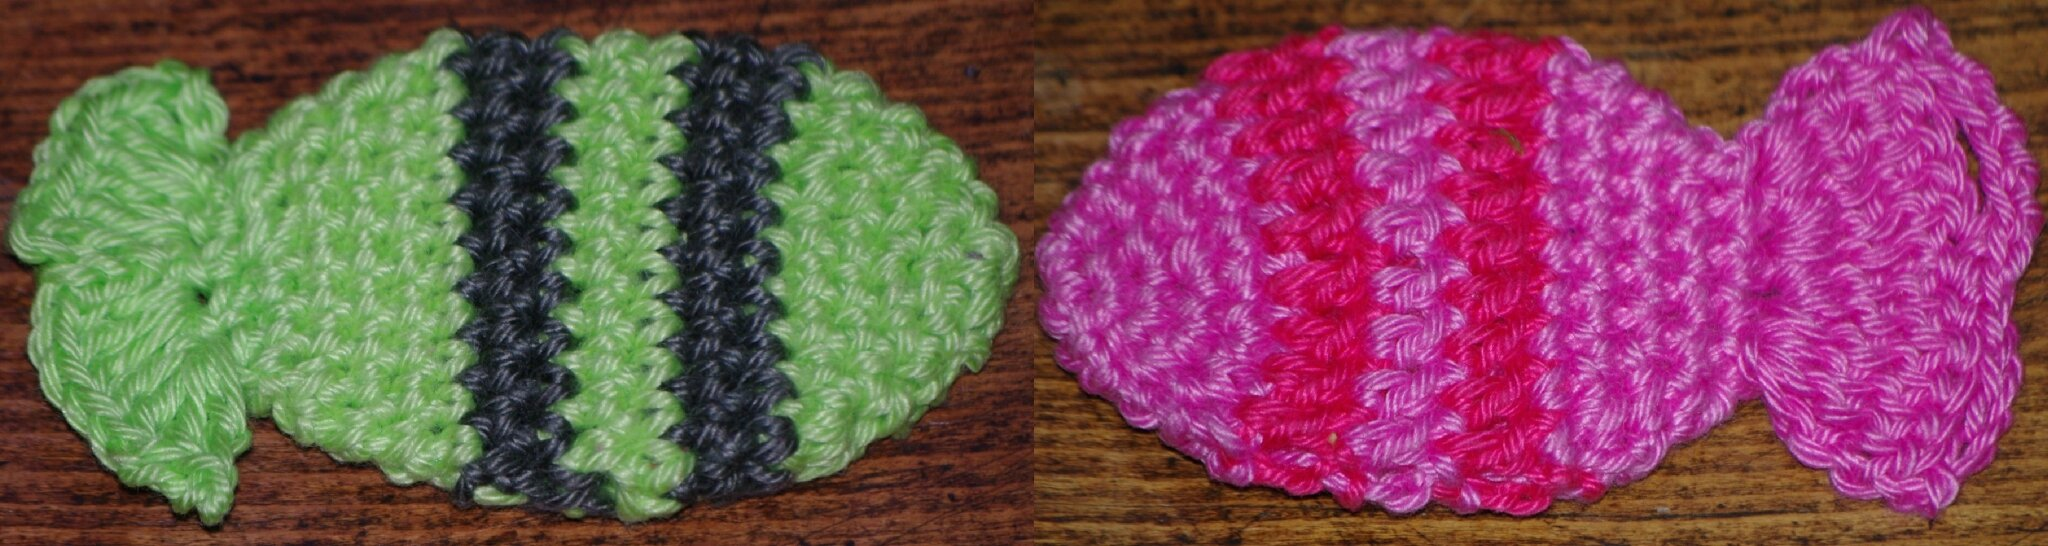 poisson tropical rayé au crochet